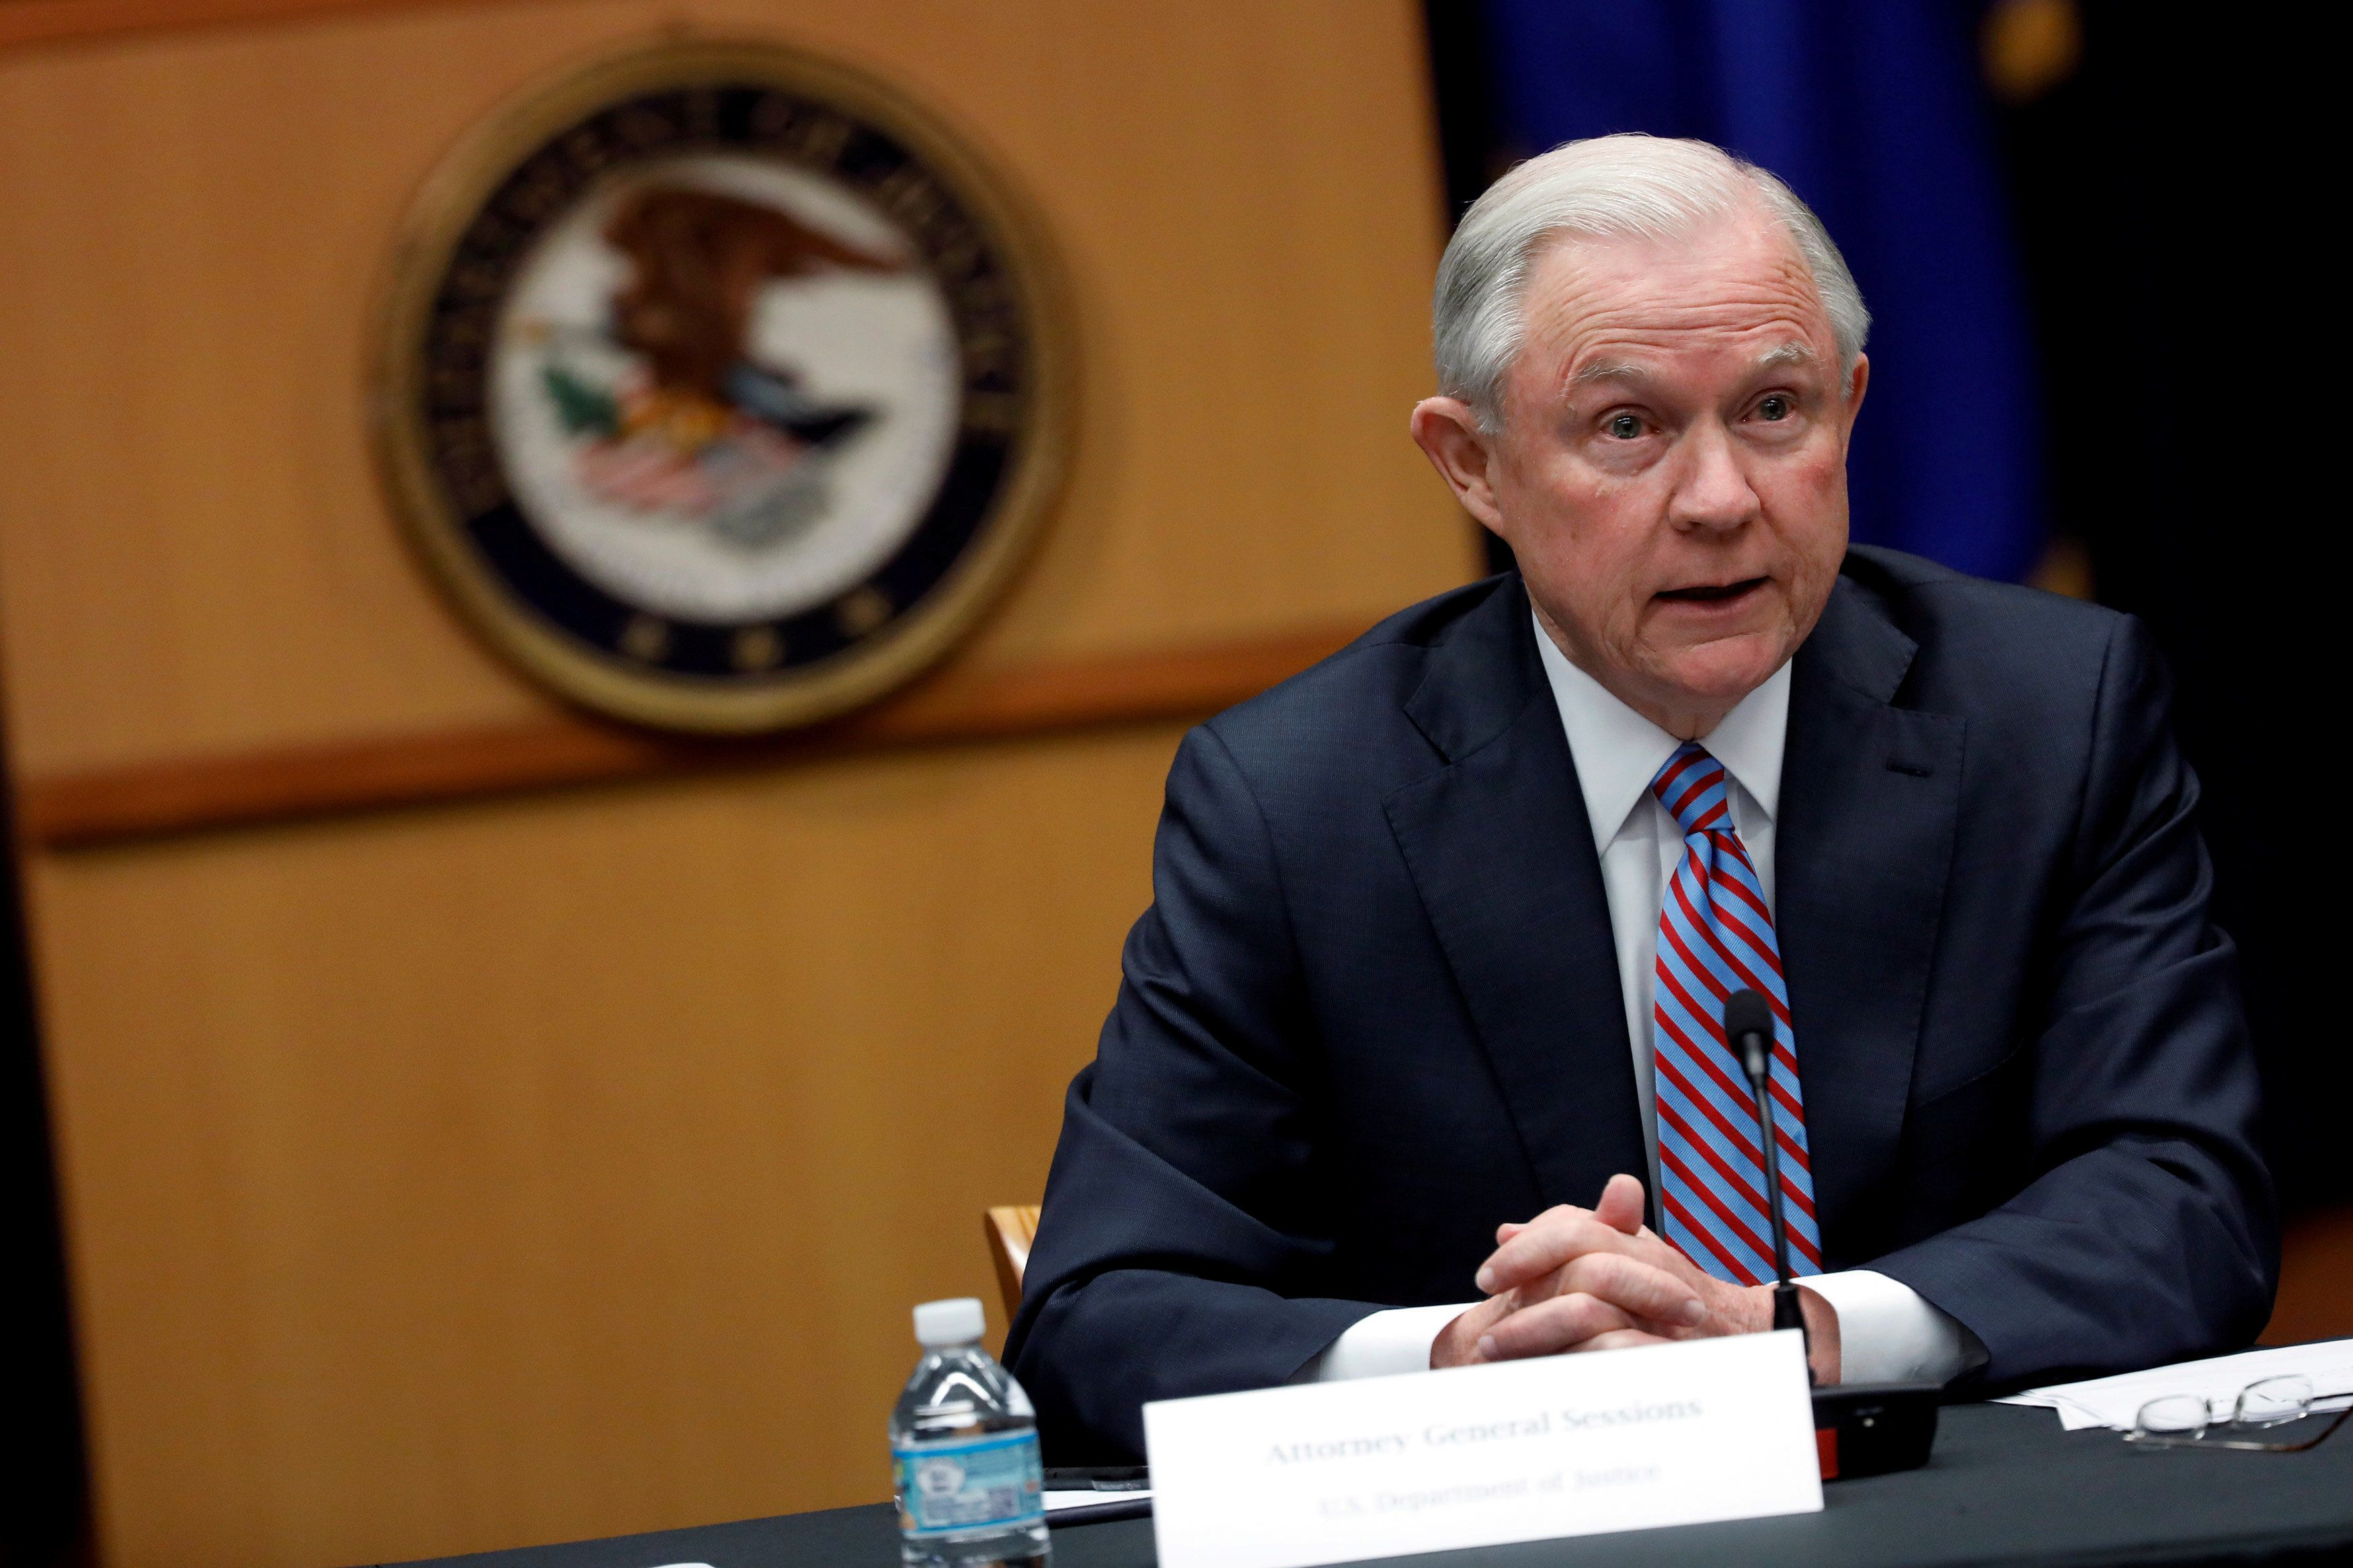 Attorney General Jeff Sessions speaks during a meeting with the Organized Crime Council and Organized Crime Drug Enforcement